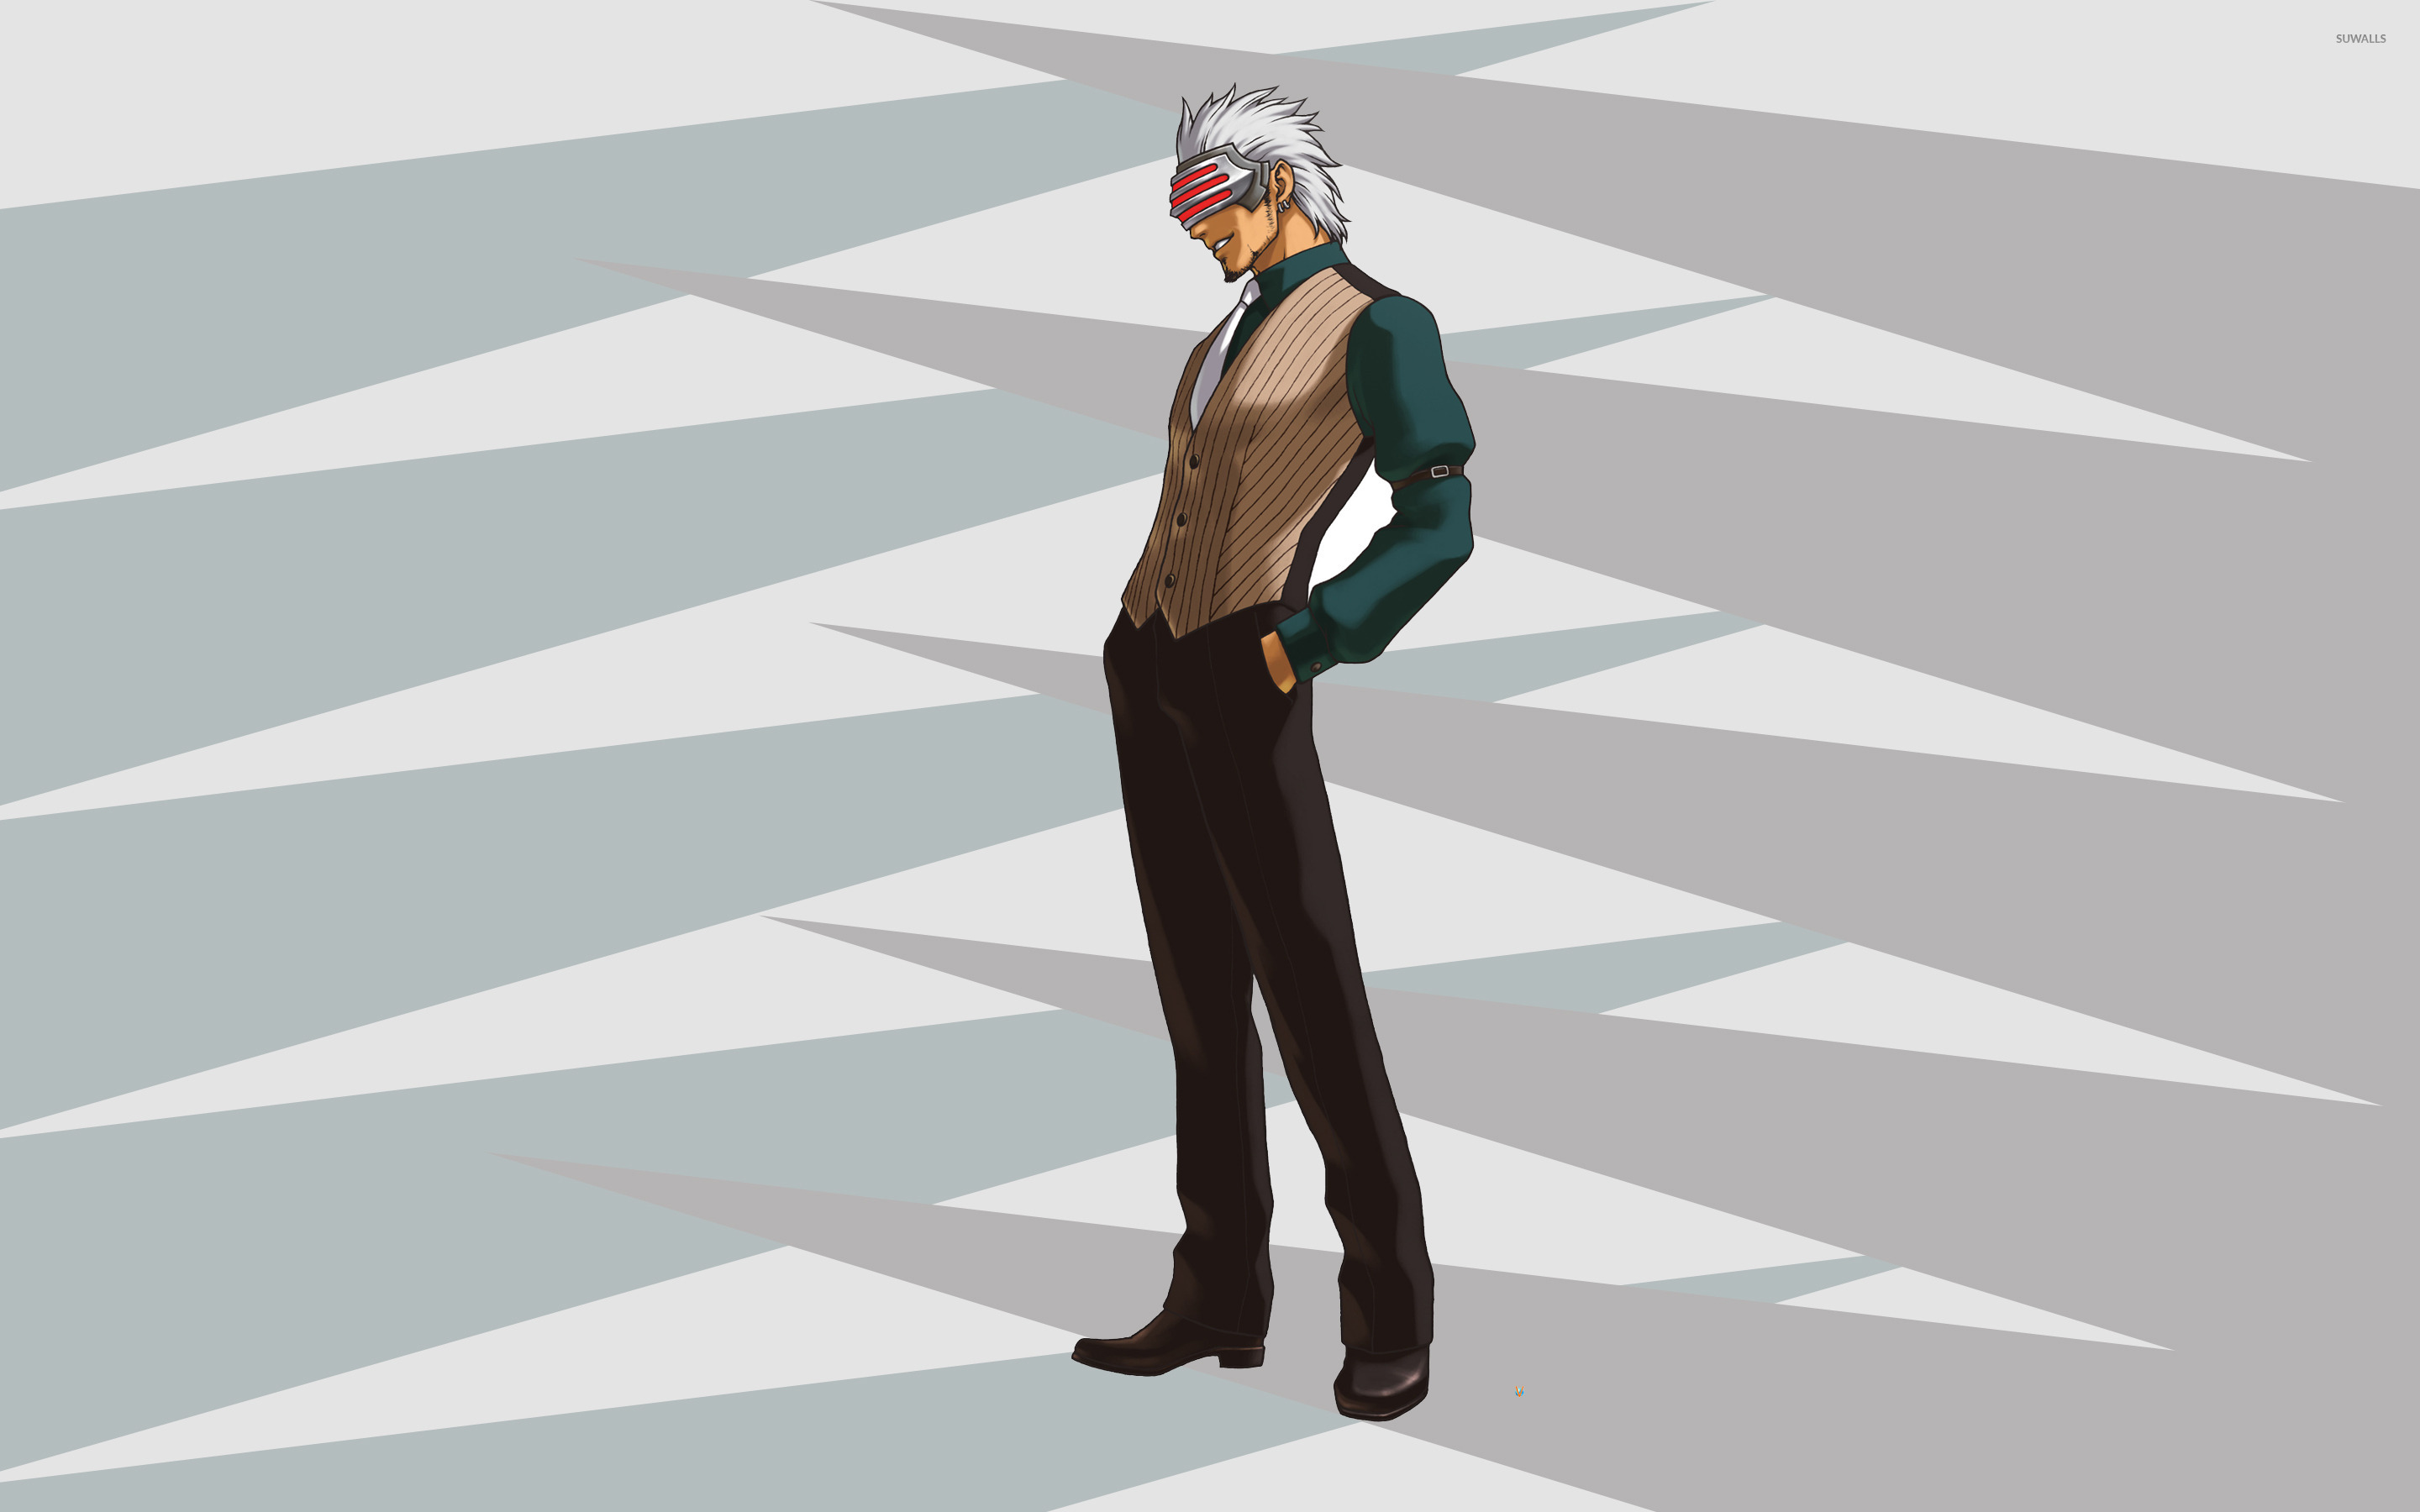 Godot Phoenix Wright Ace Attorney Wallpaper Game Wallpapers